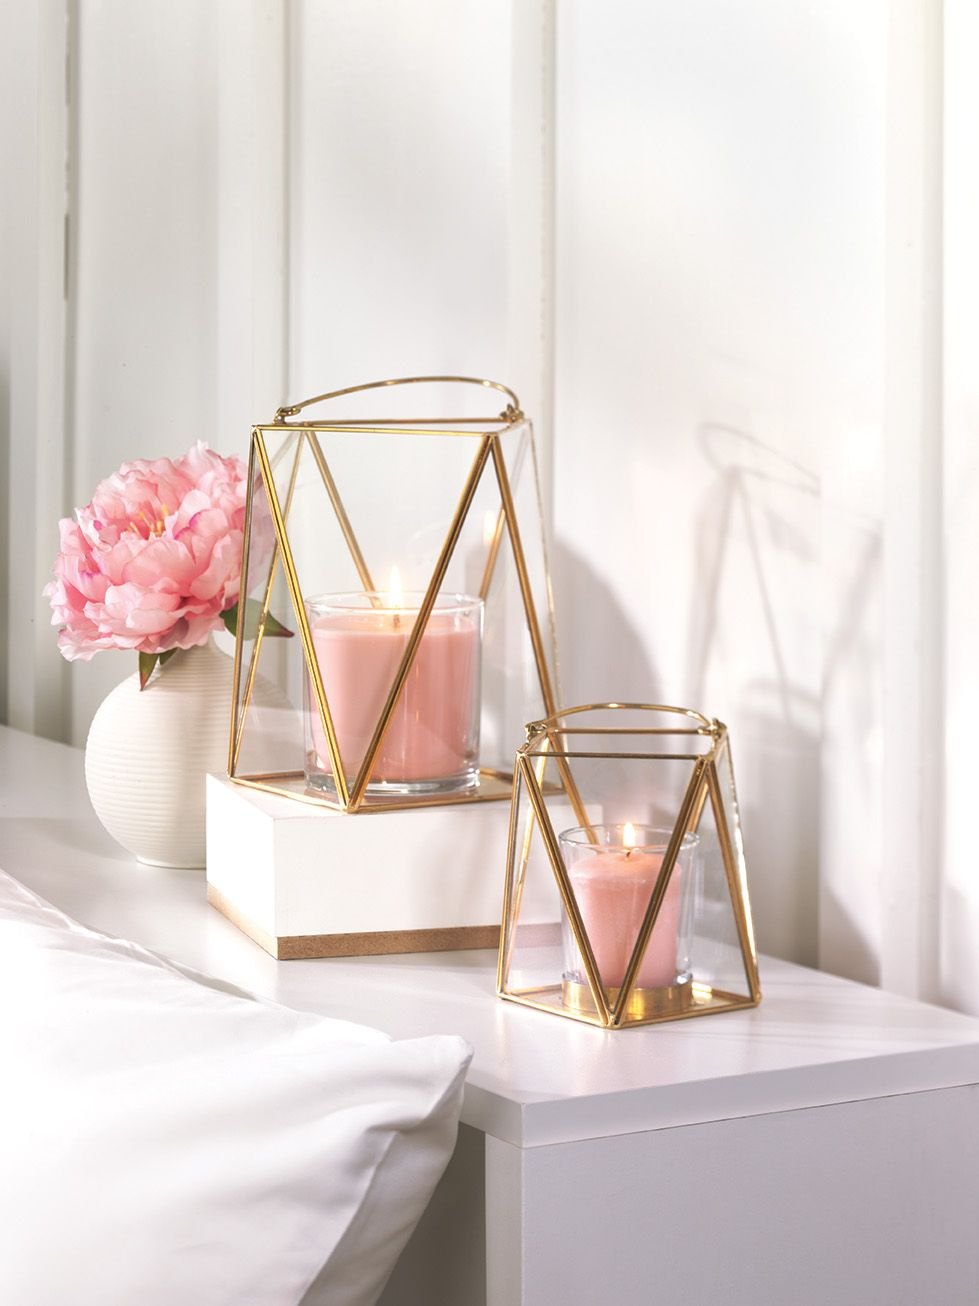 The Antique Charm Of A Candle Lit Lantern Interpreted Into